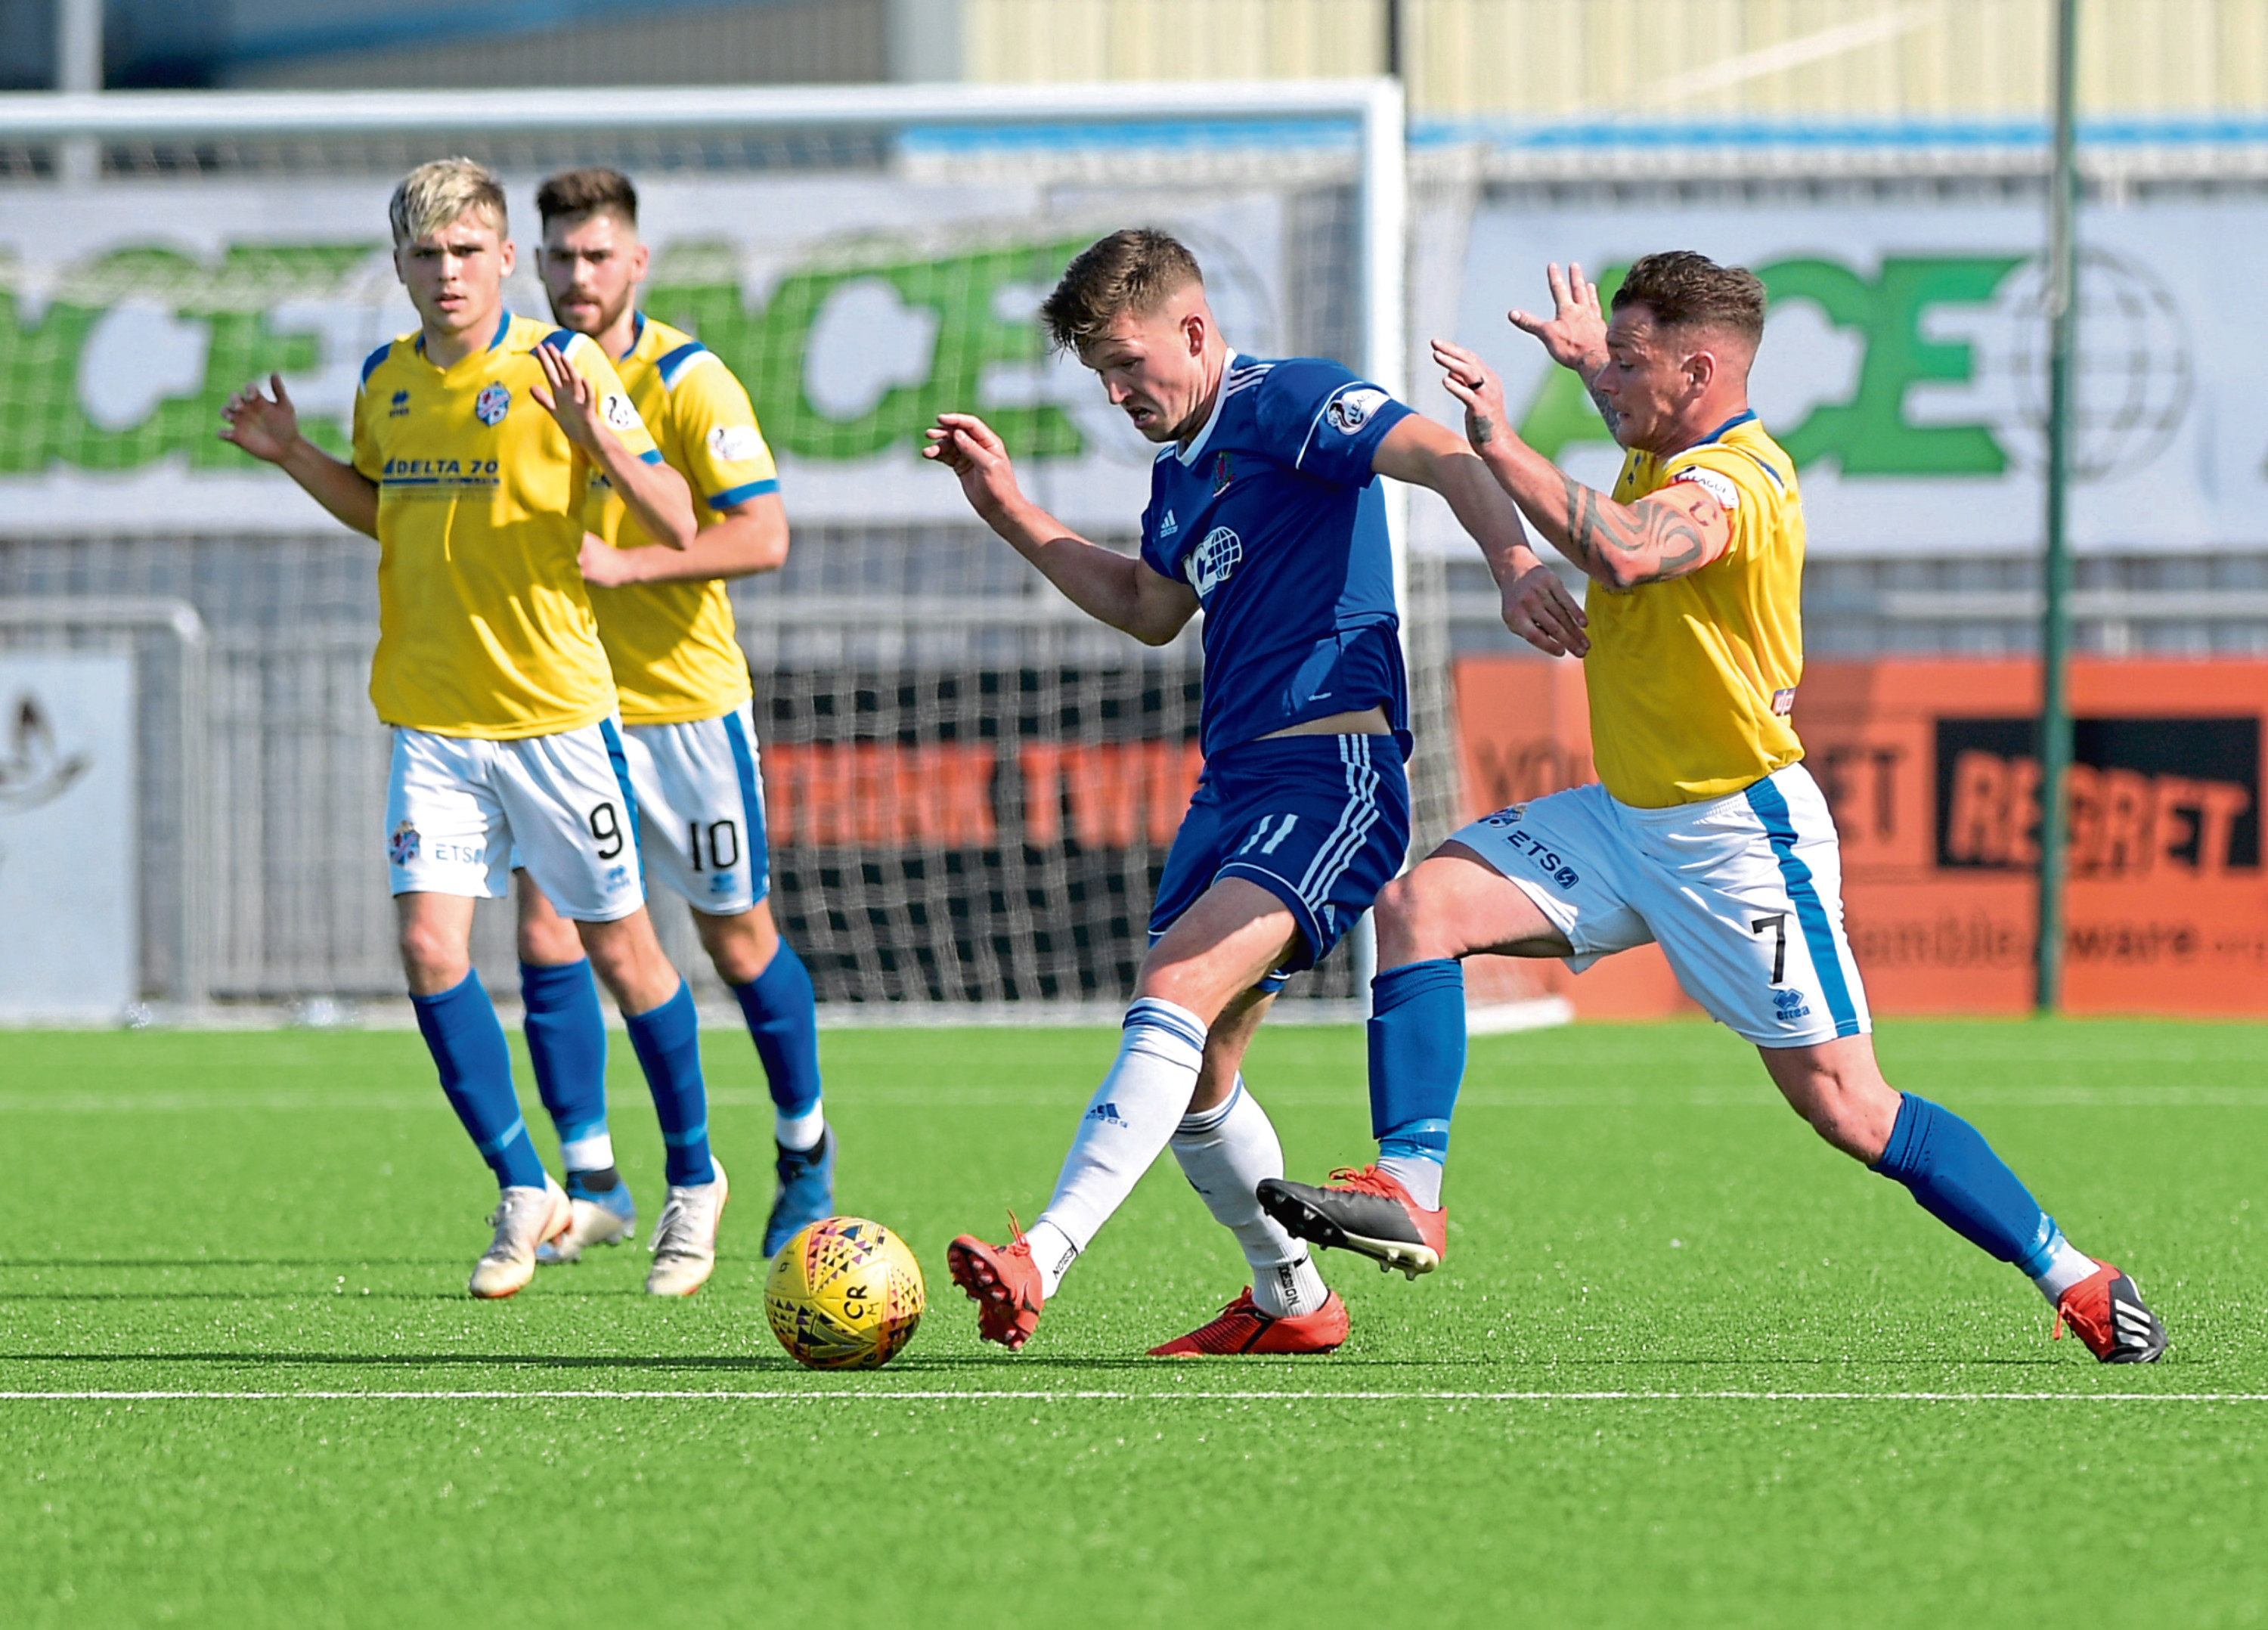 Cove's Jamie Masson and Cowdenbeath's David Cox. Picture by Kath Flannery